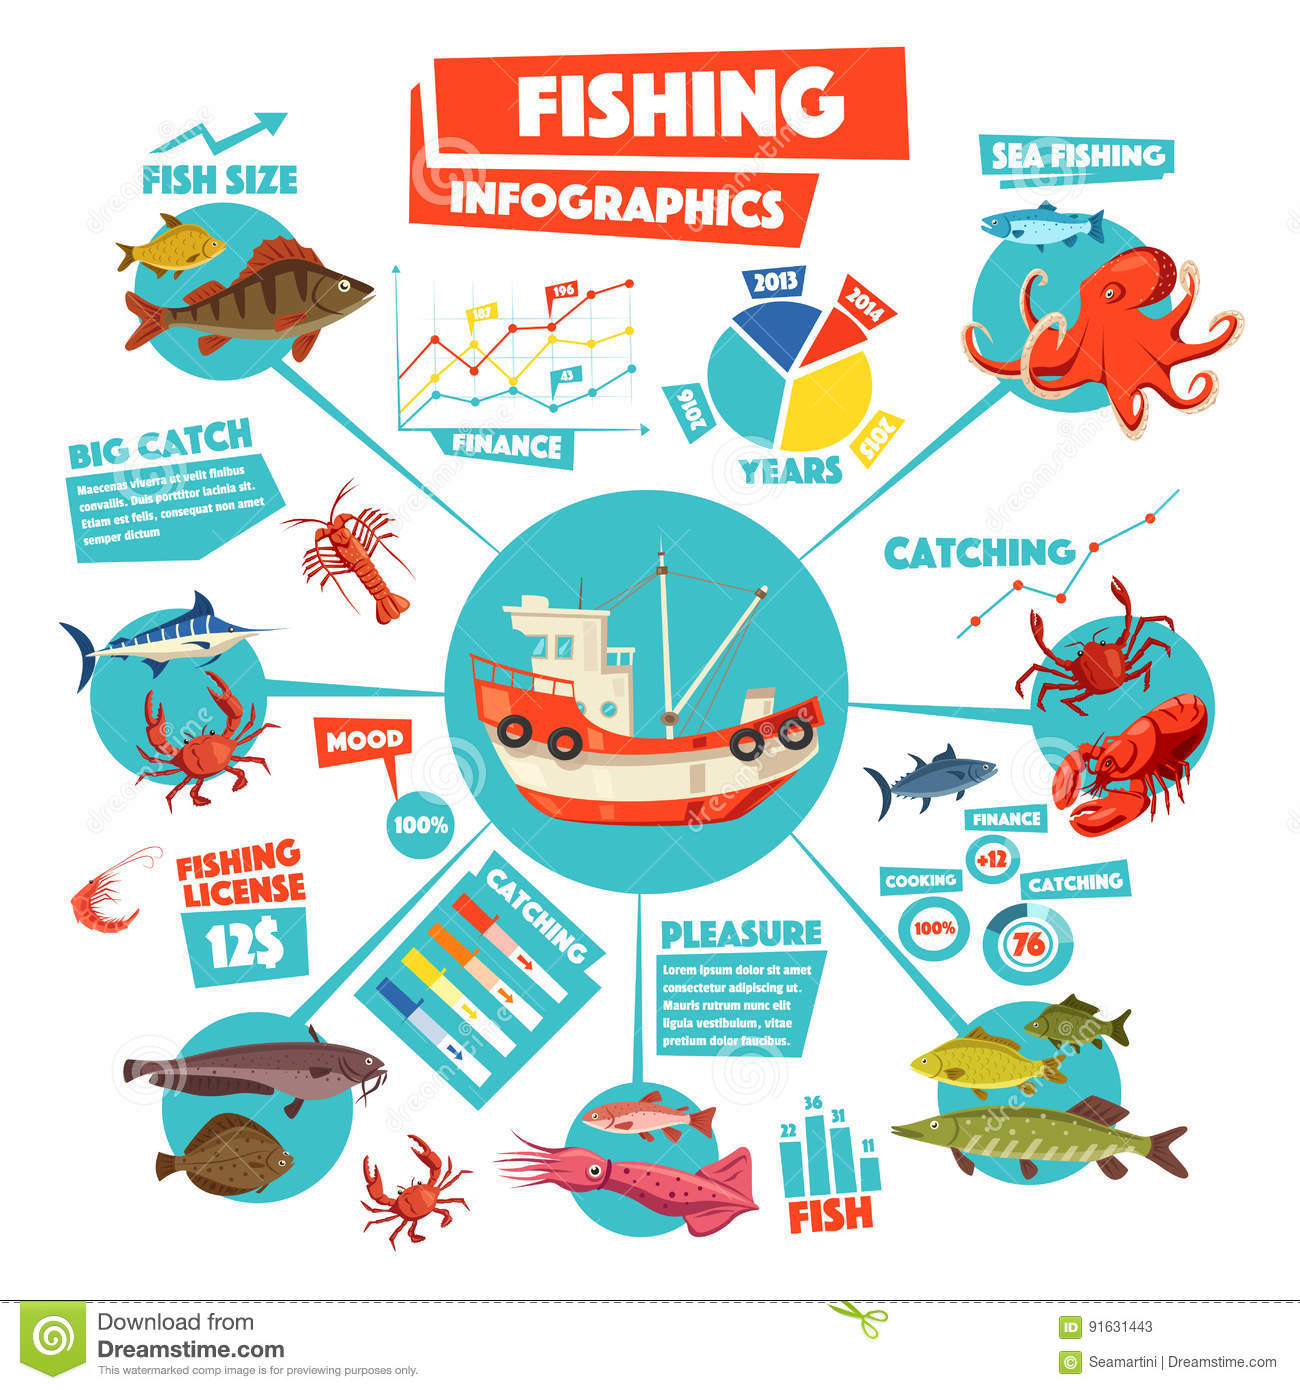 Fishing Infographics Design With Graph, Fish, Boat Stock Vector ...